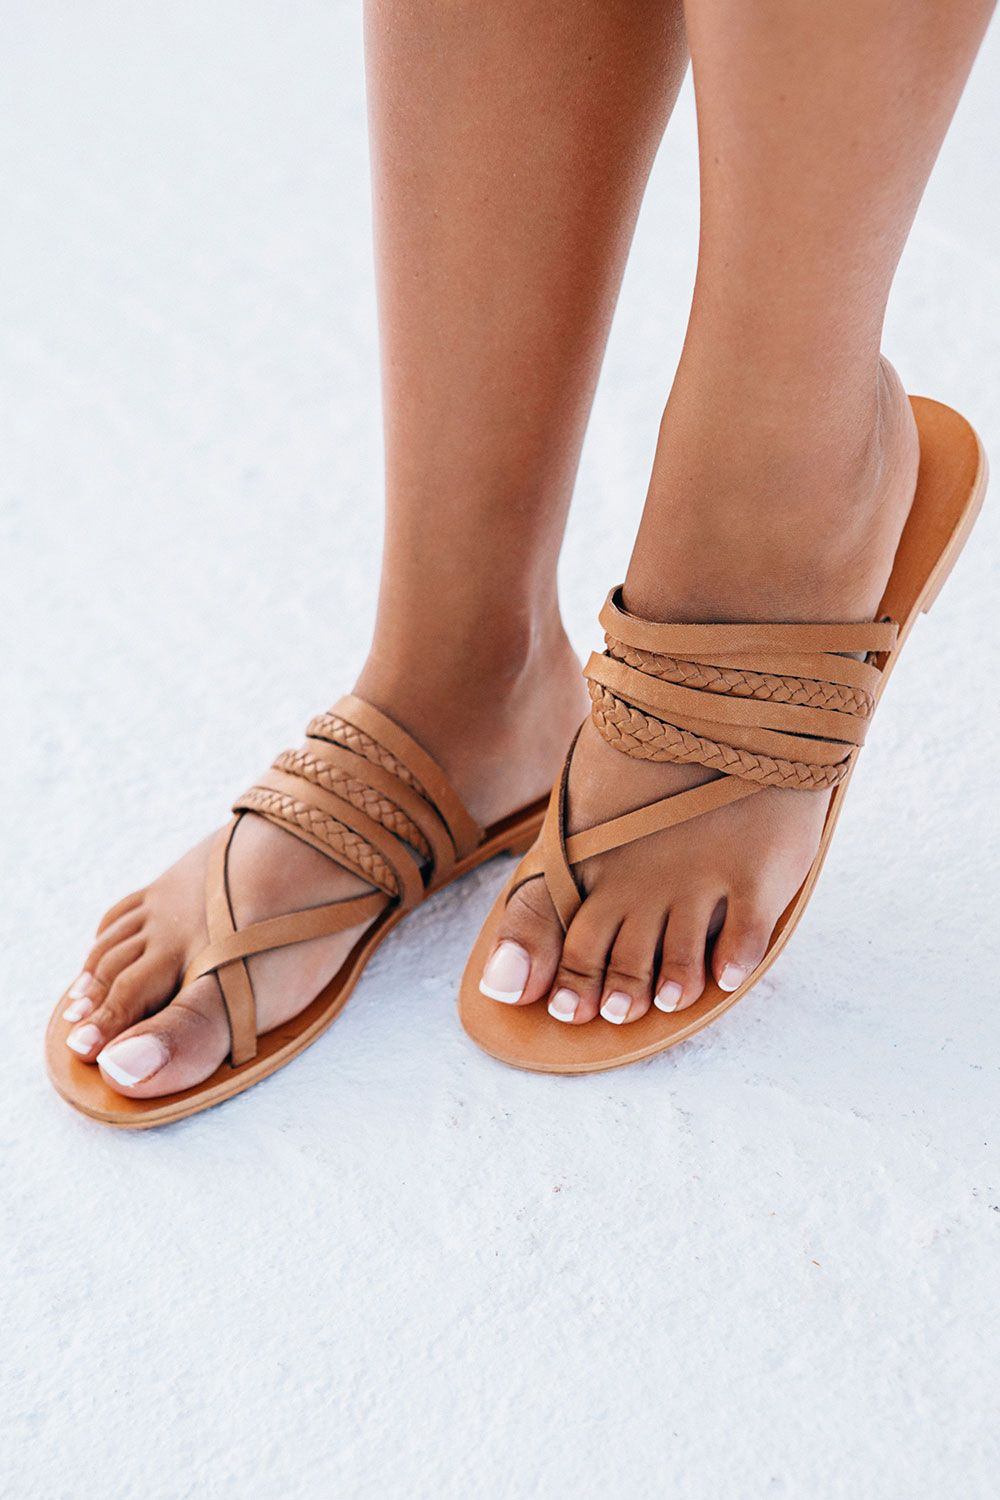 8e1467d76dcd Best 10 sandals Cute comfortable strappy gladiator leather wedge sandals  chunky flatform jamaica lace up boho espadrilles sandals  sandals  shoes   slippers ...